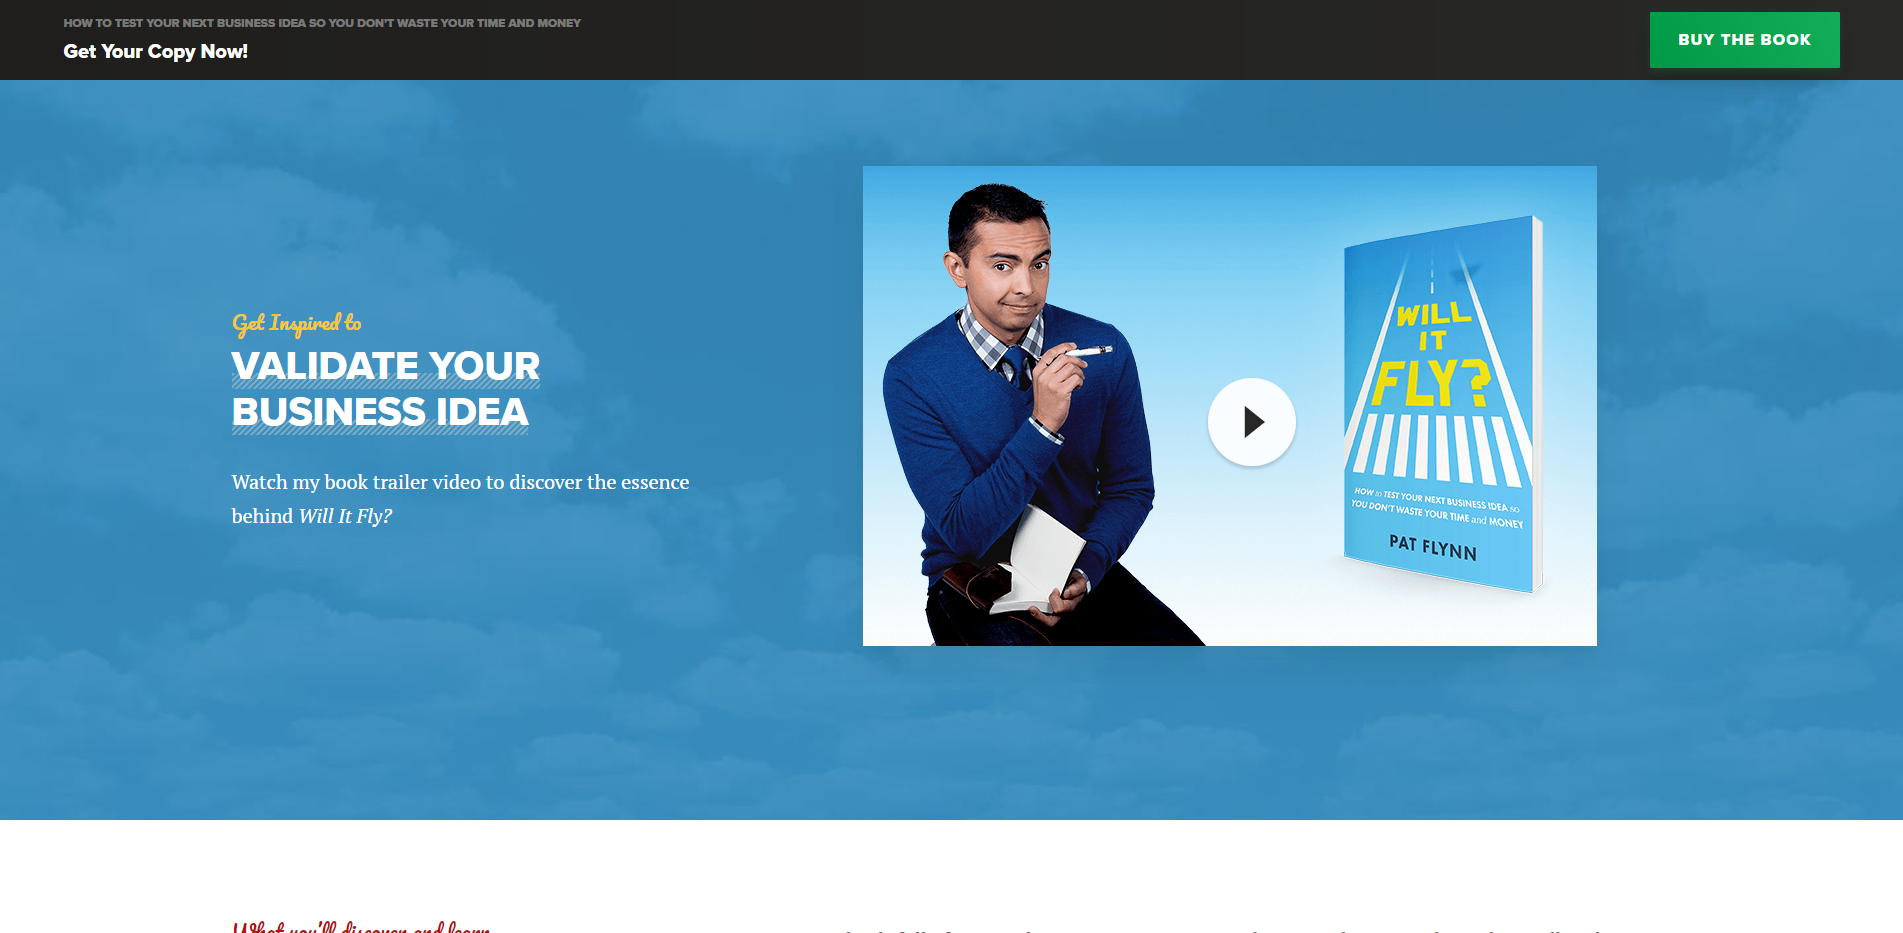 Will It Fly by Pat Flynn Ebook Landing Page